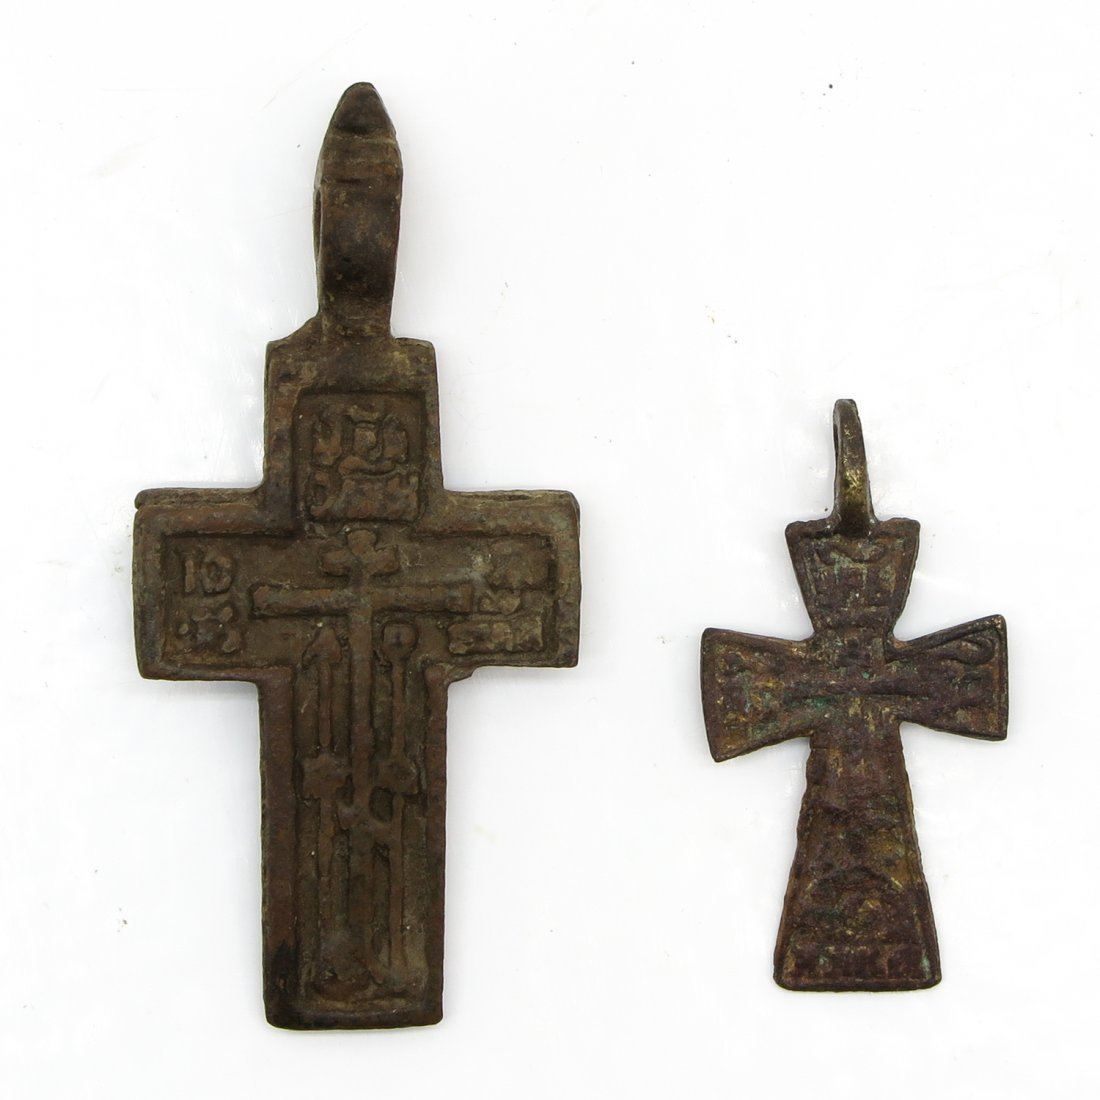 Lot of 2 Middle Ages Cross Pendants